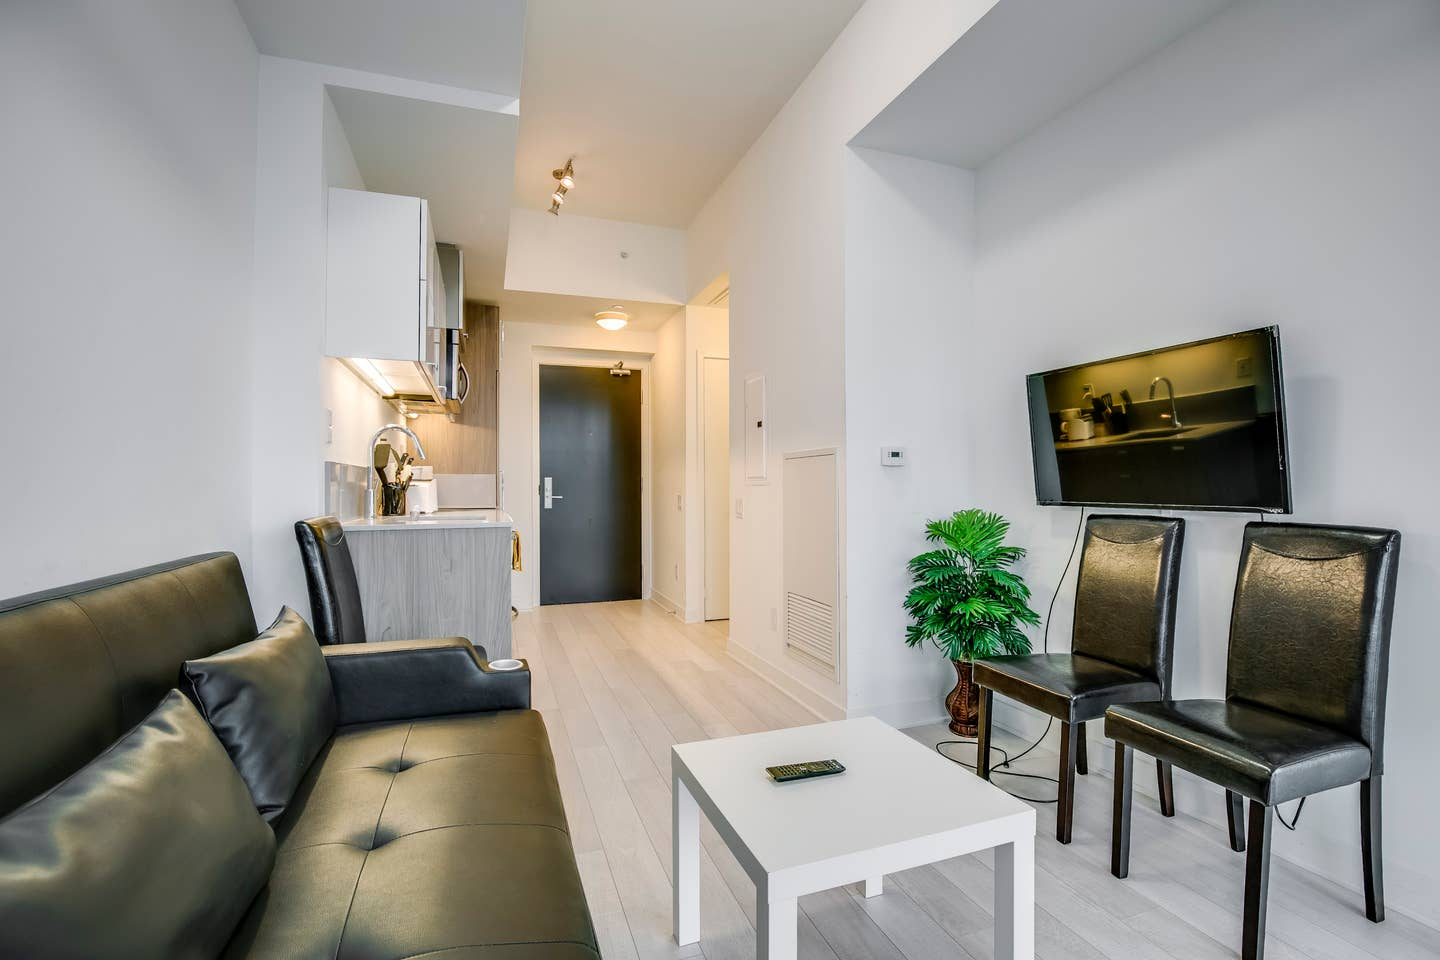 Equipment of Furnished Rentals in Toronto